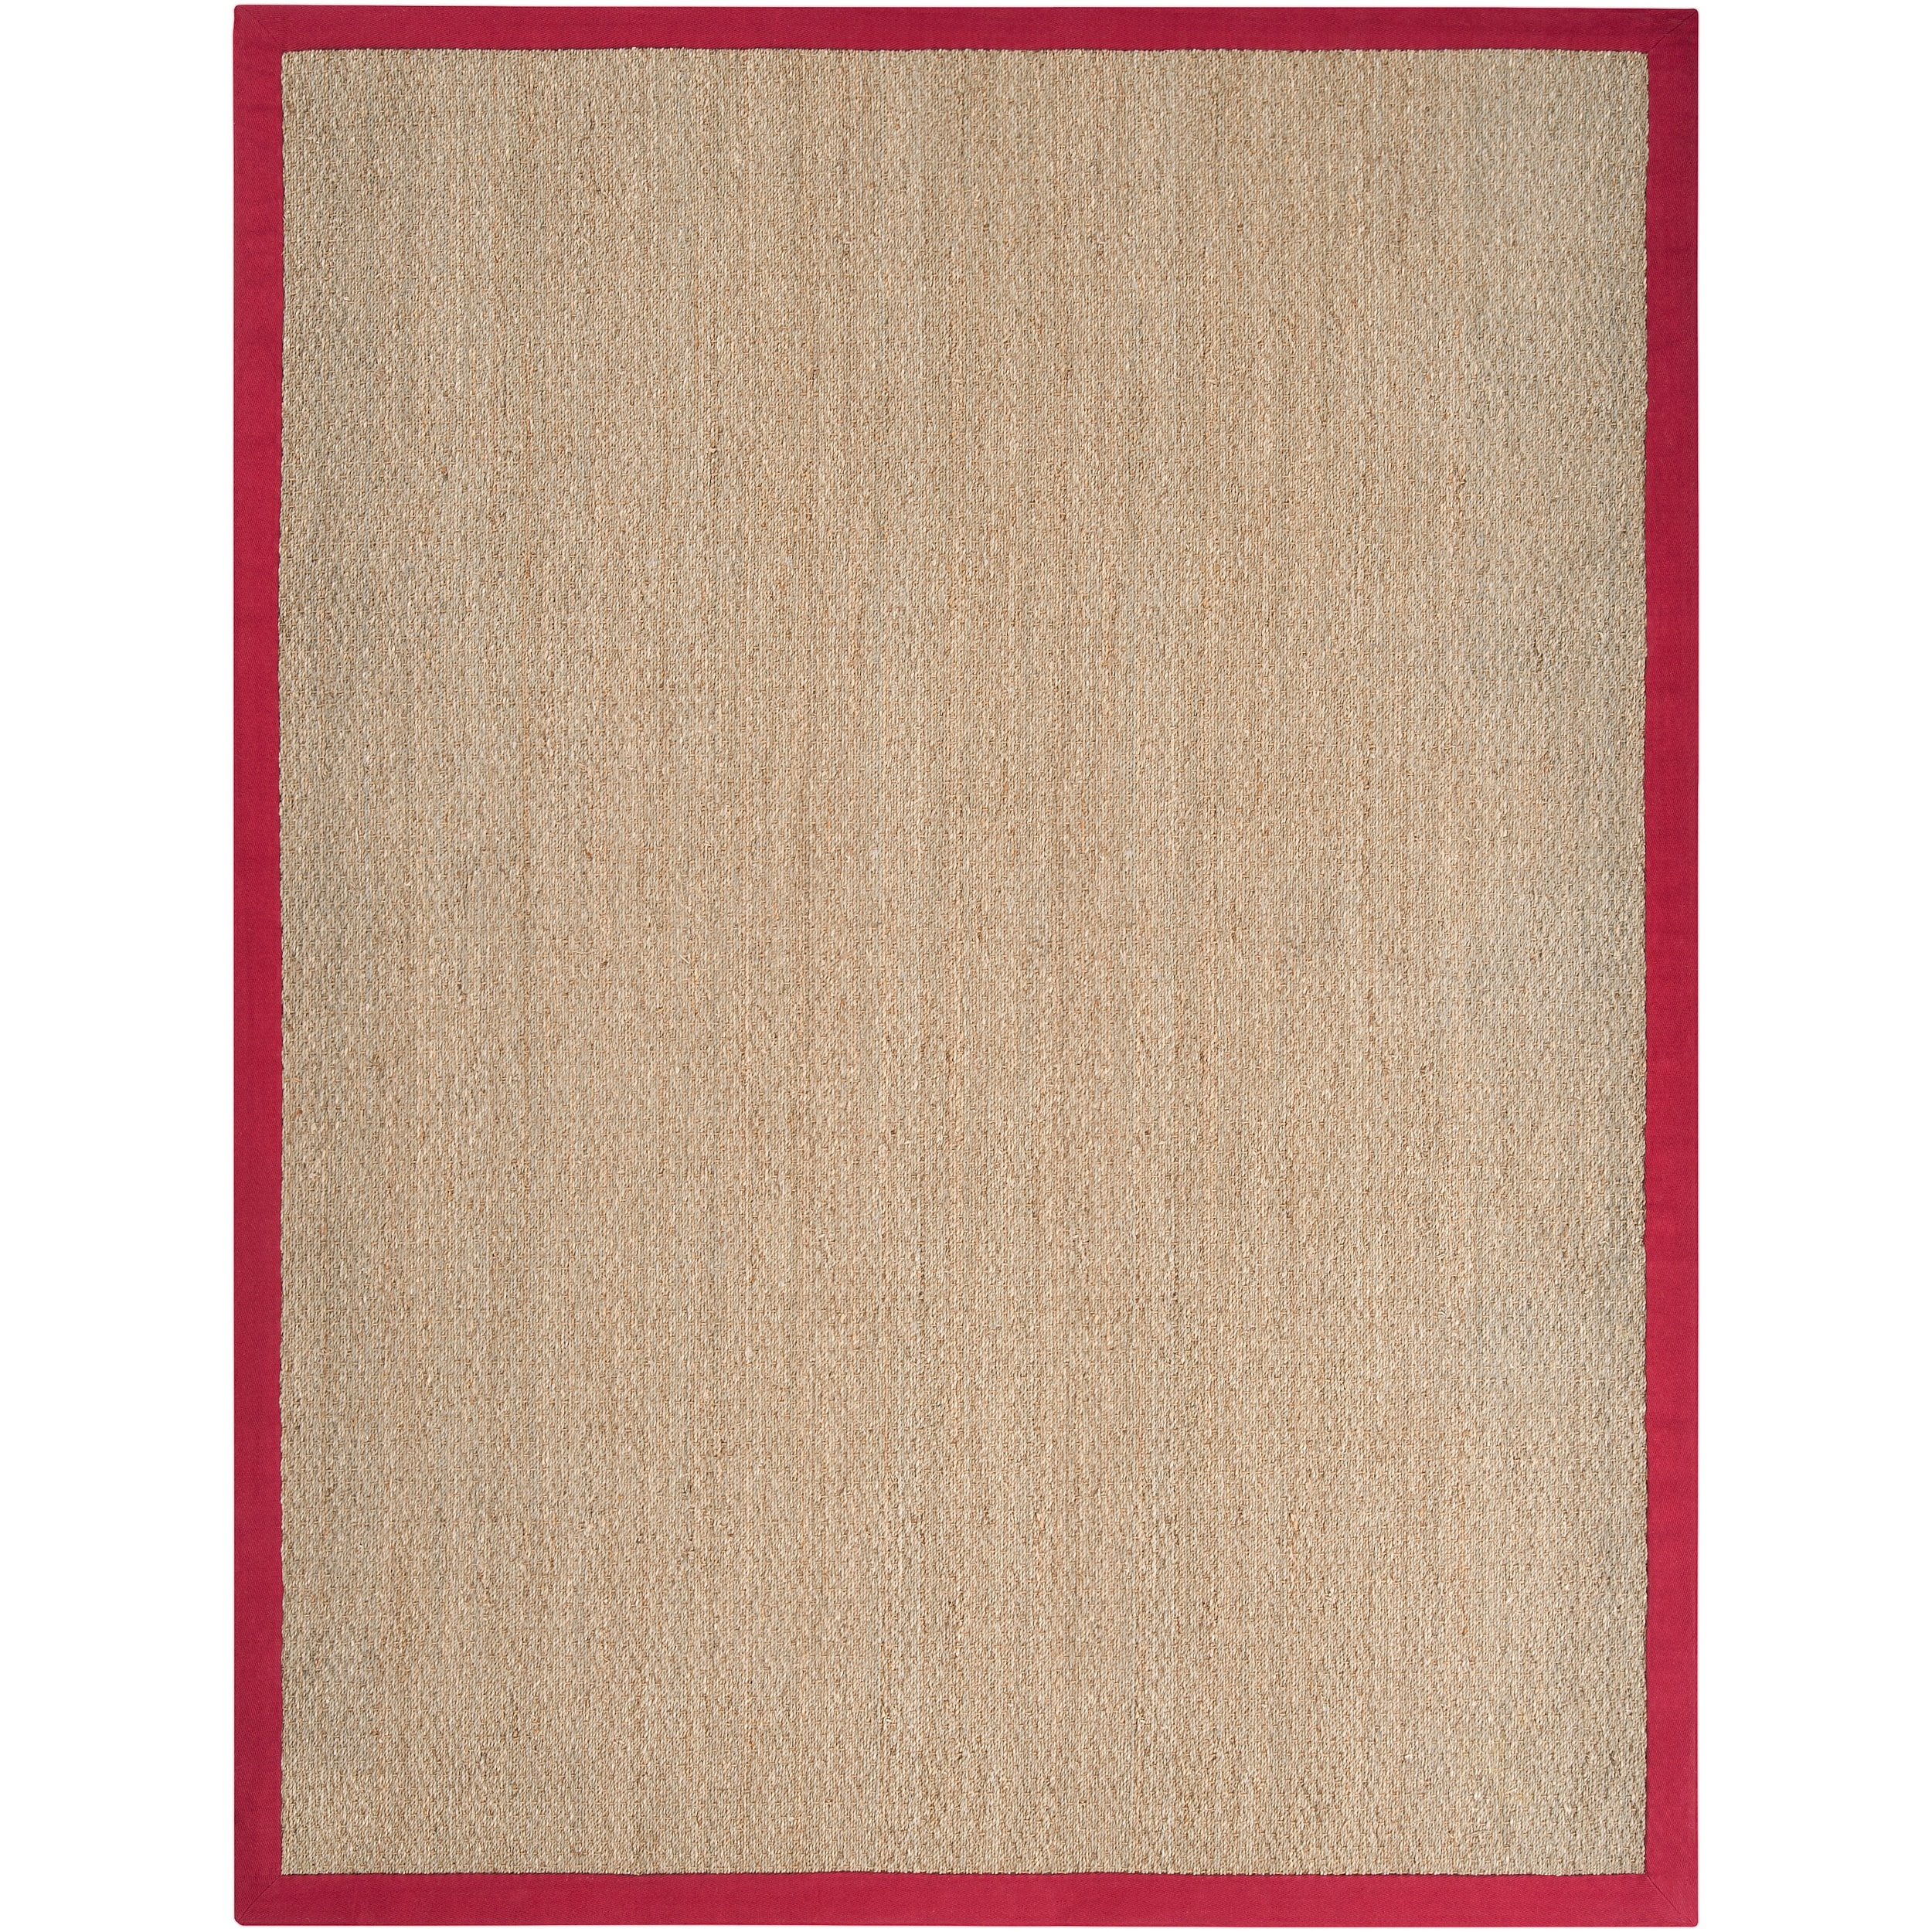 Hand-woven Red Flawless Seagrass Rug (8' x 10')